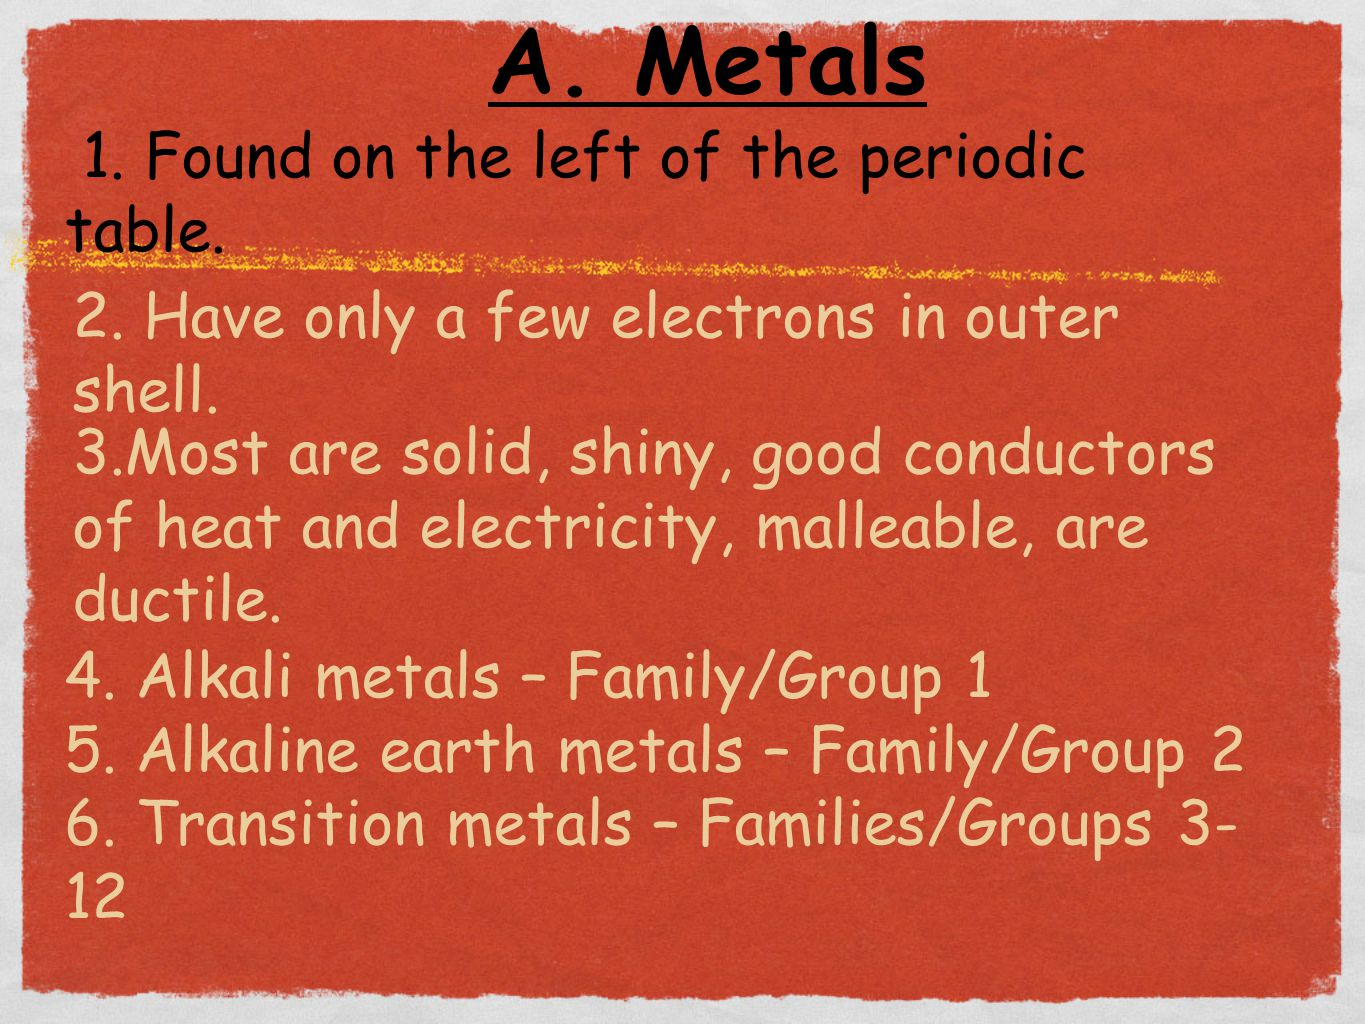 A. Metals 1. Found on the left of the periodic table. 2. Have only a few electrons in outer shell. 3.Most are solid, shiny, good conductors of heat an